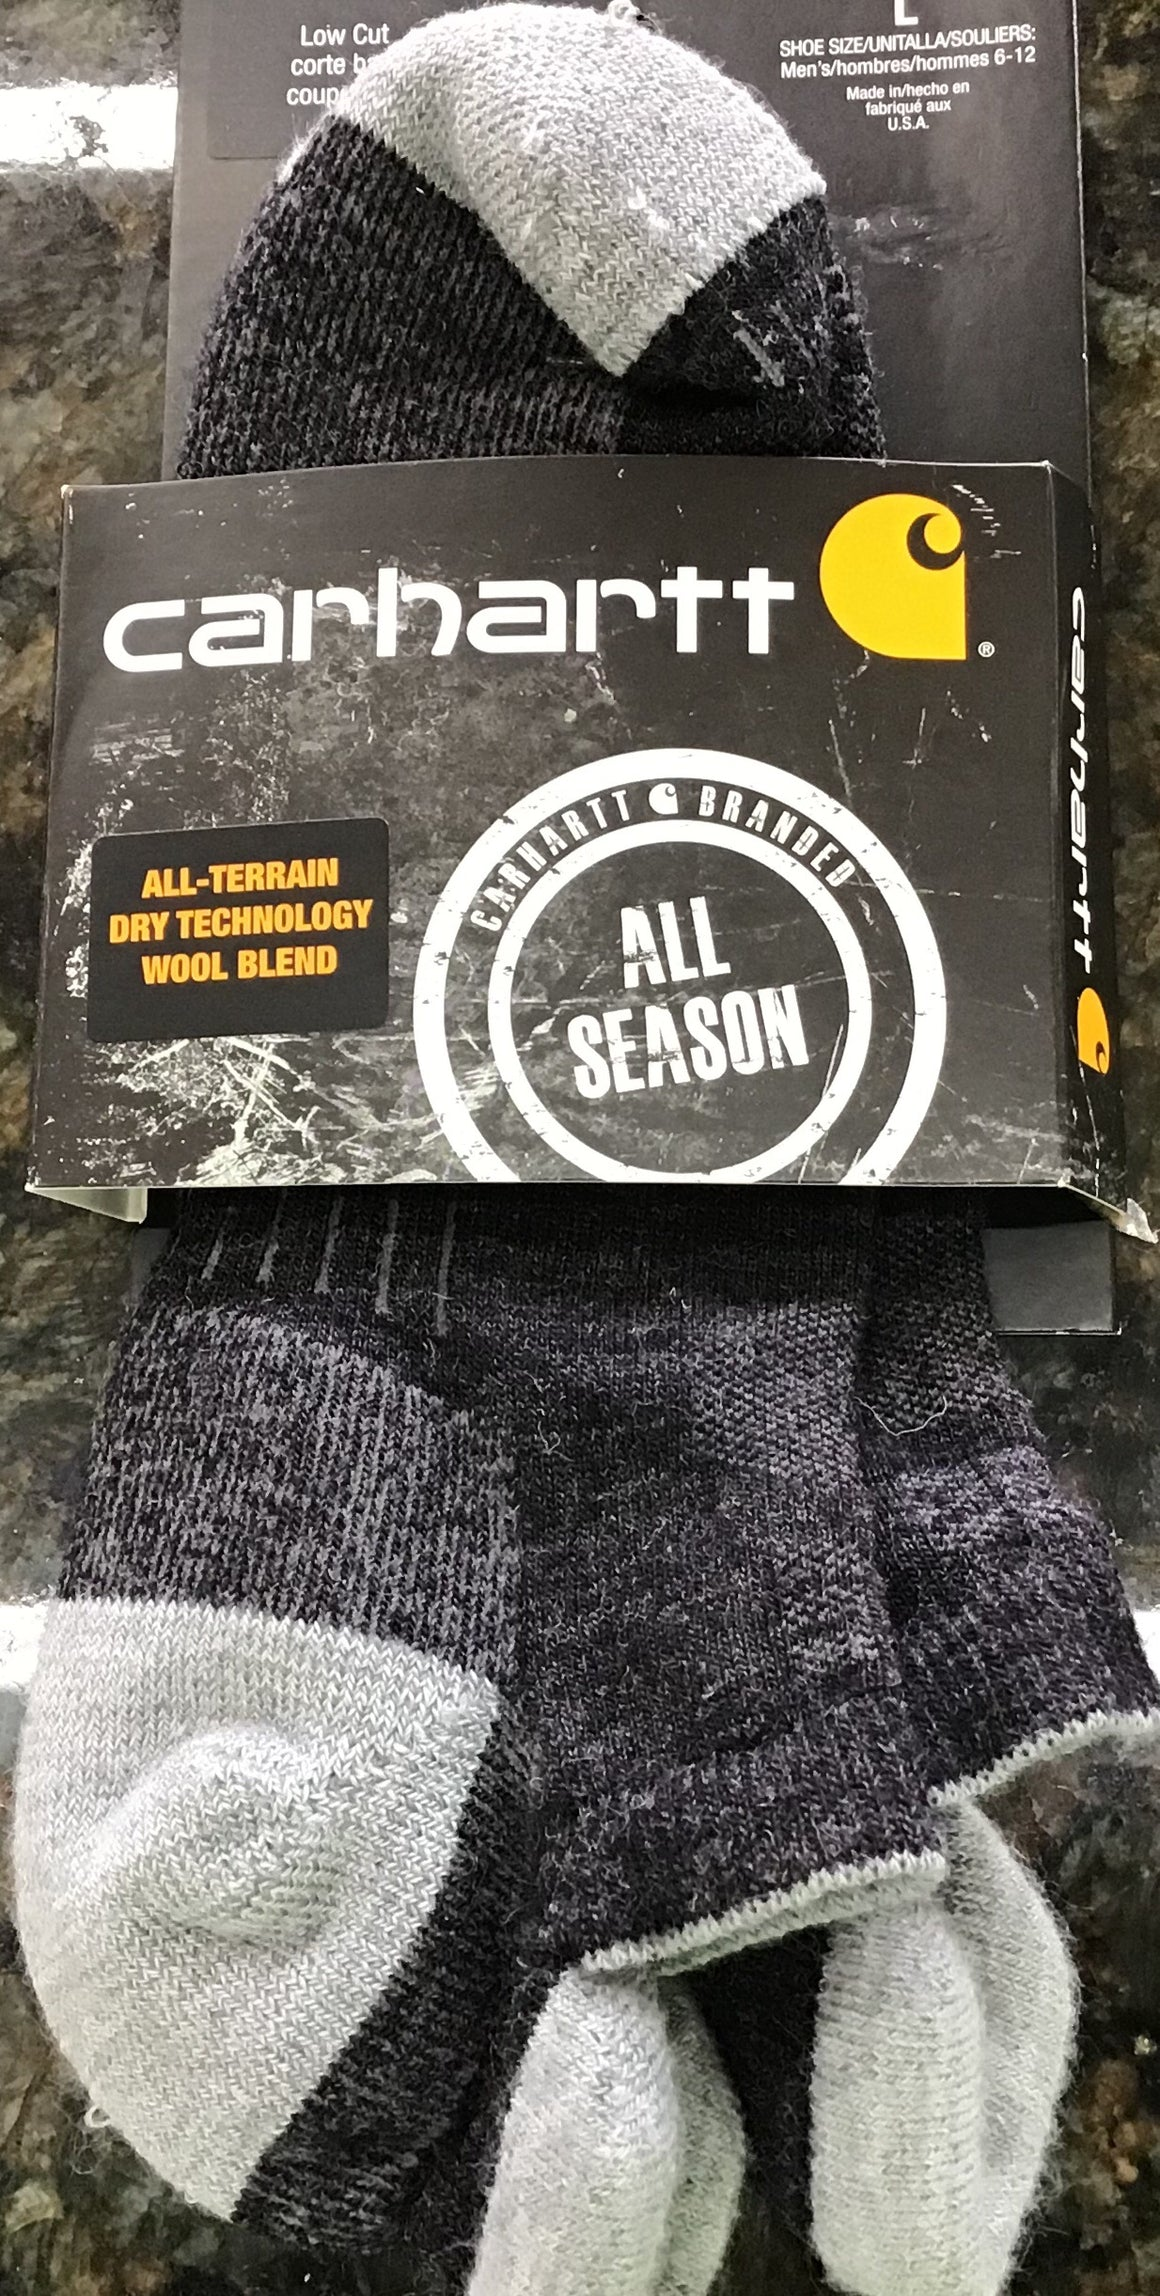 Carhartt All Season All-Terrain Low cut socks - 1 pair